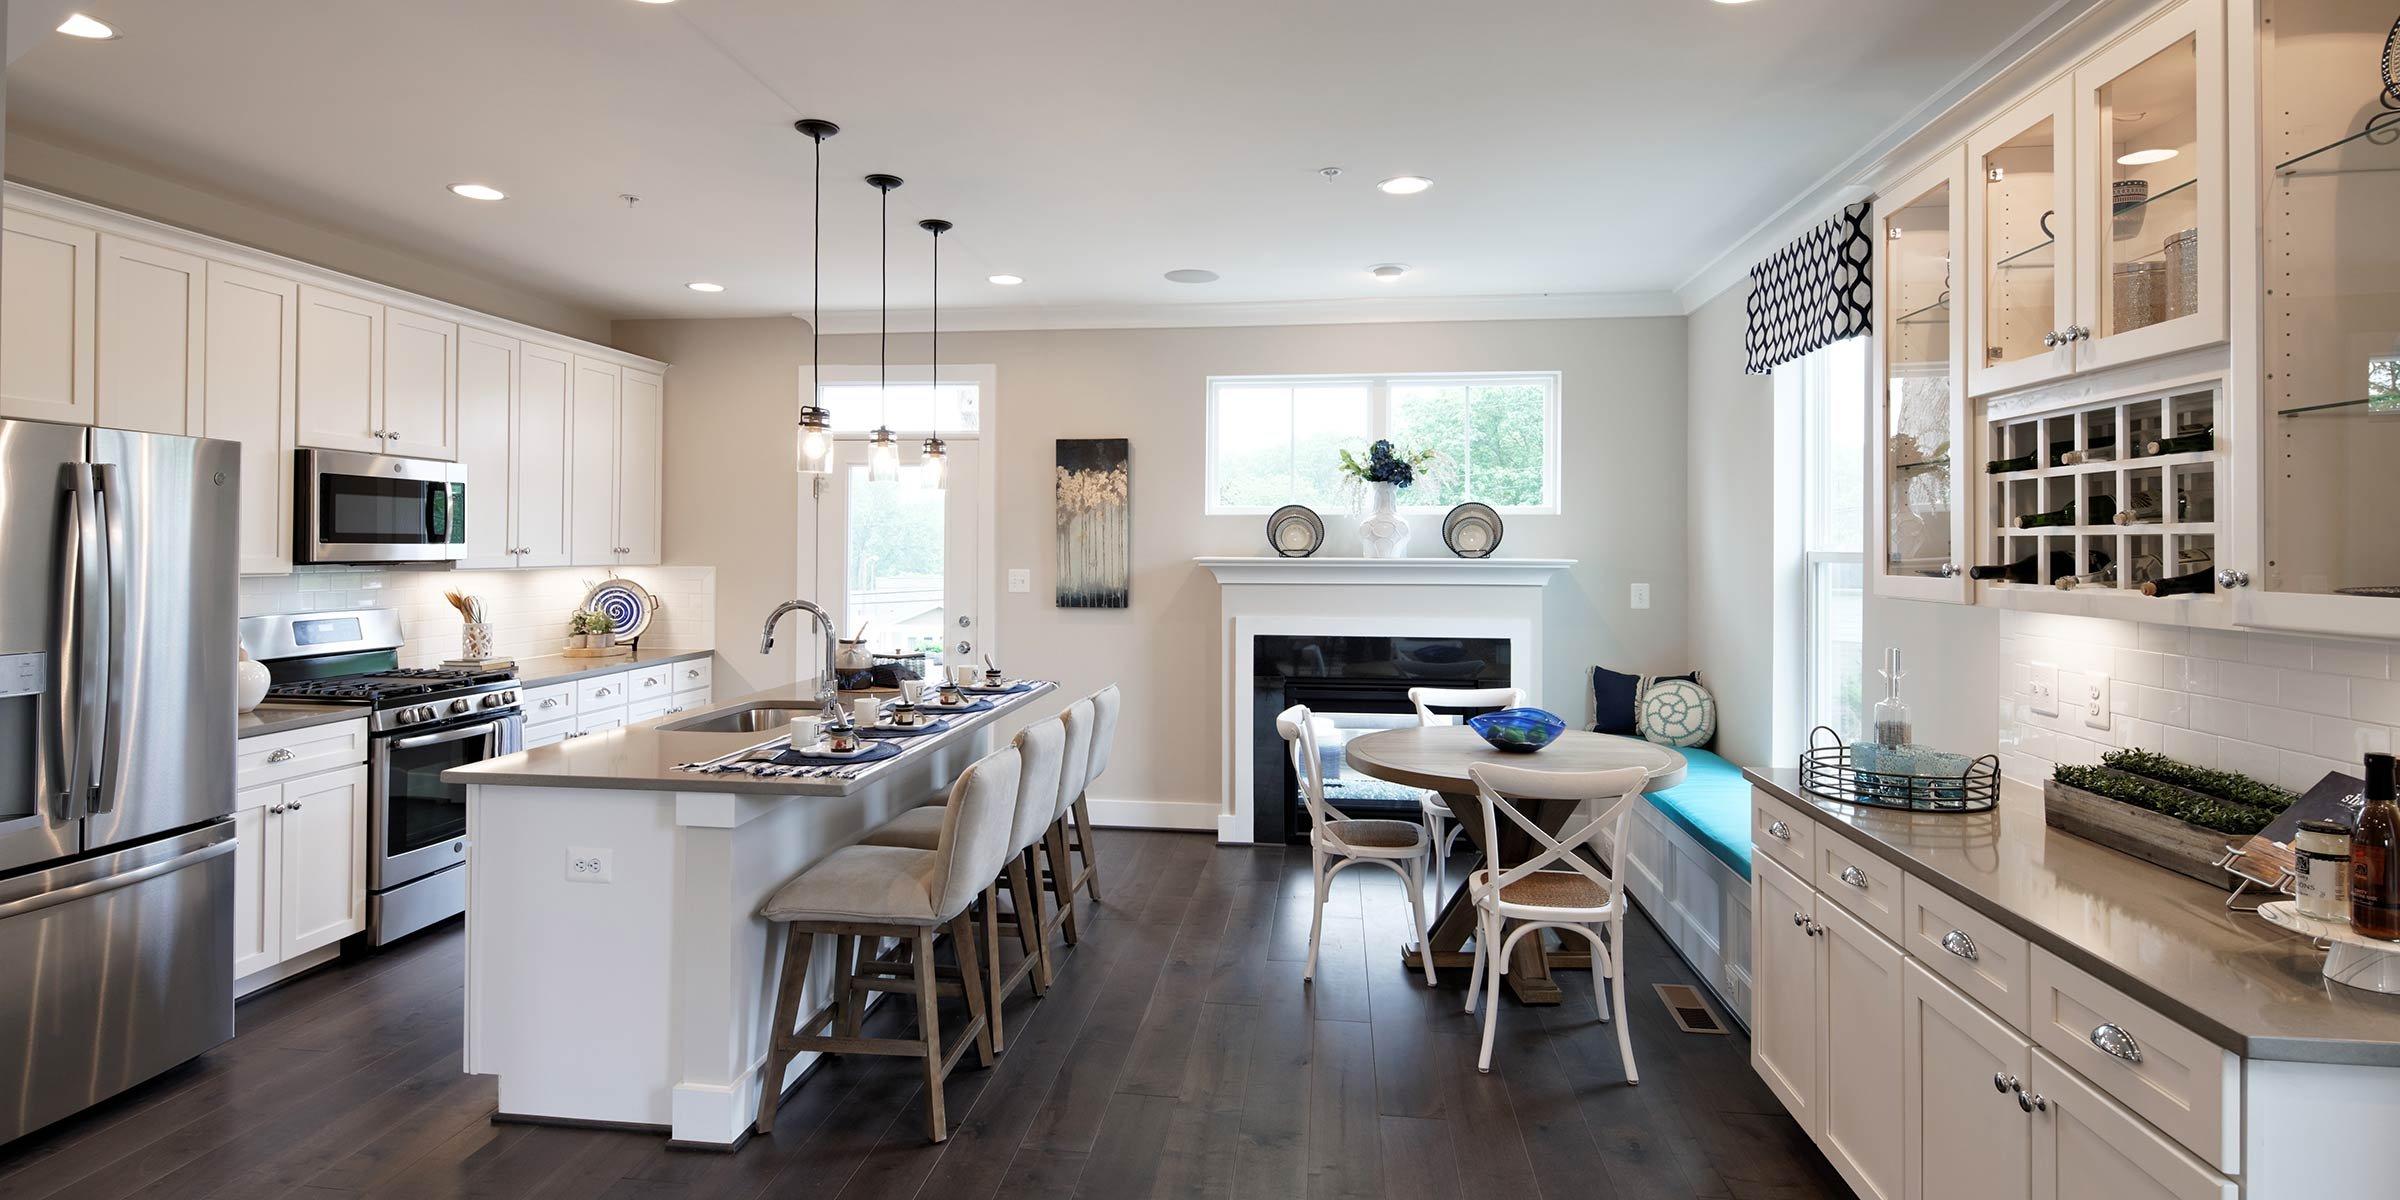 Kitchen & Dining Space, Townhomes in Annapolis MD